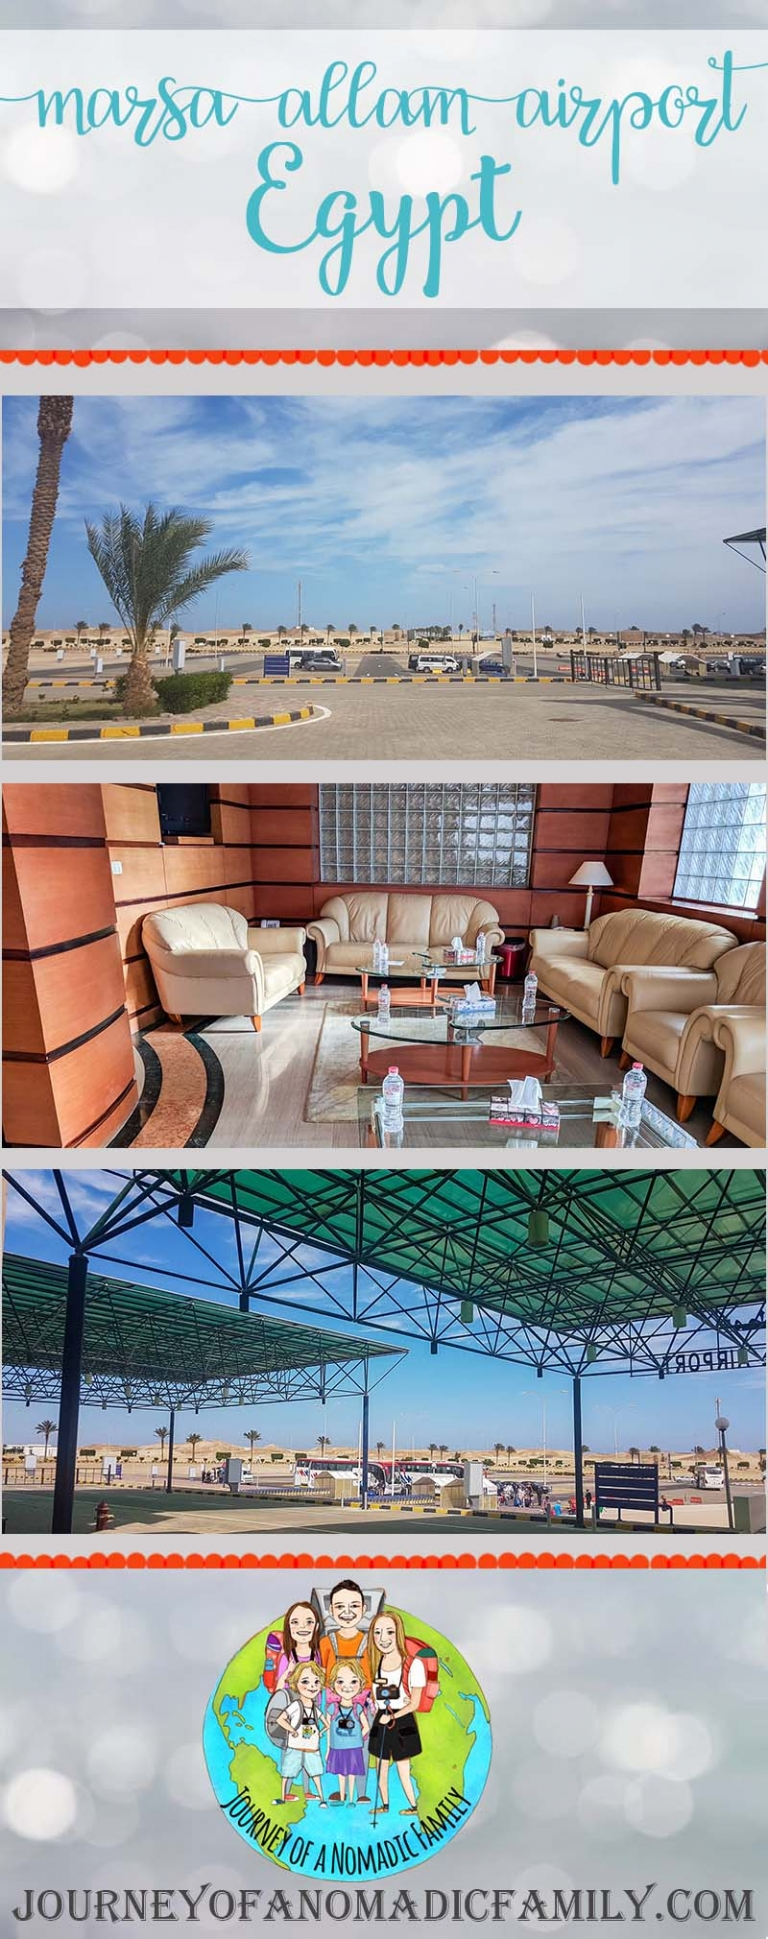 A guide to Marsa Allam airport in Egypt